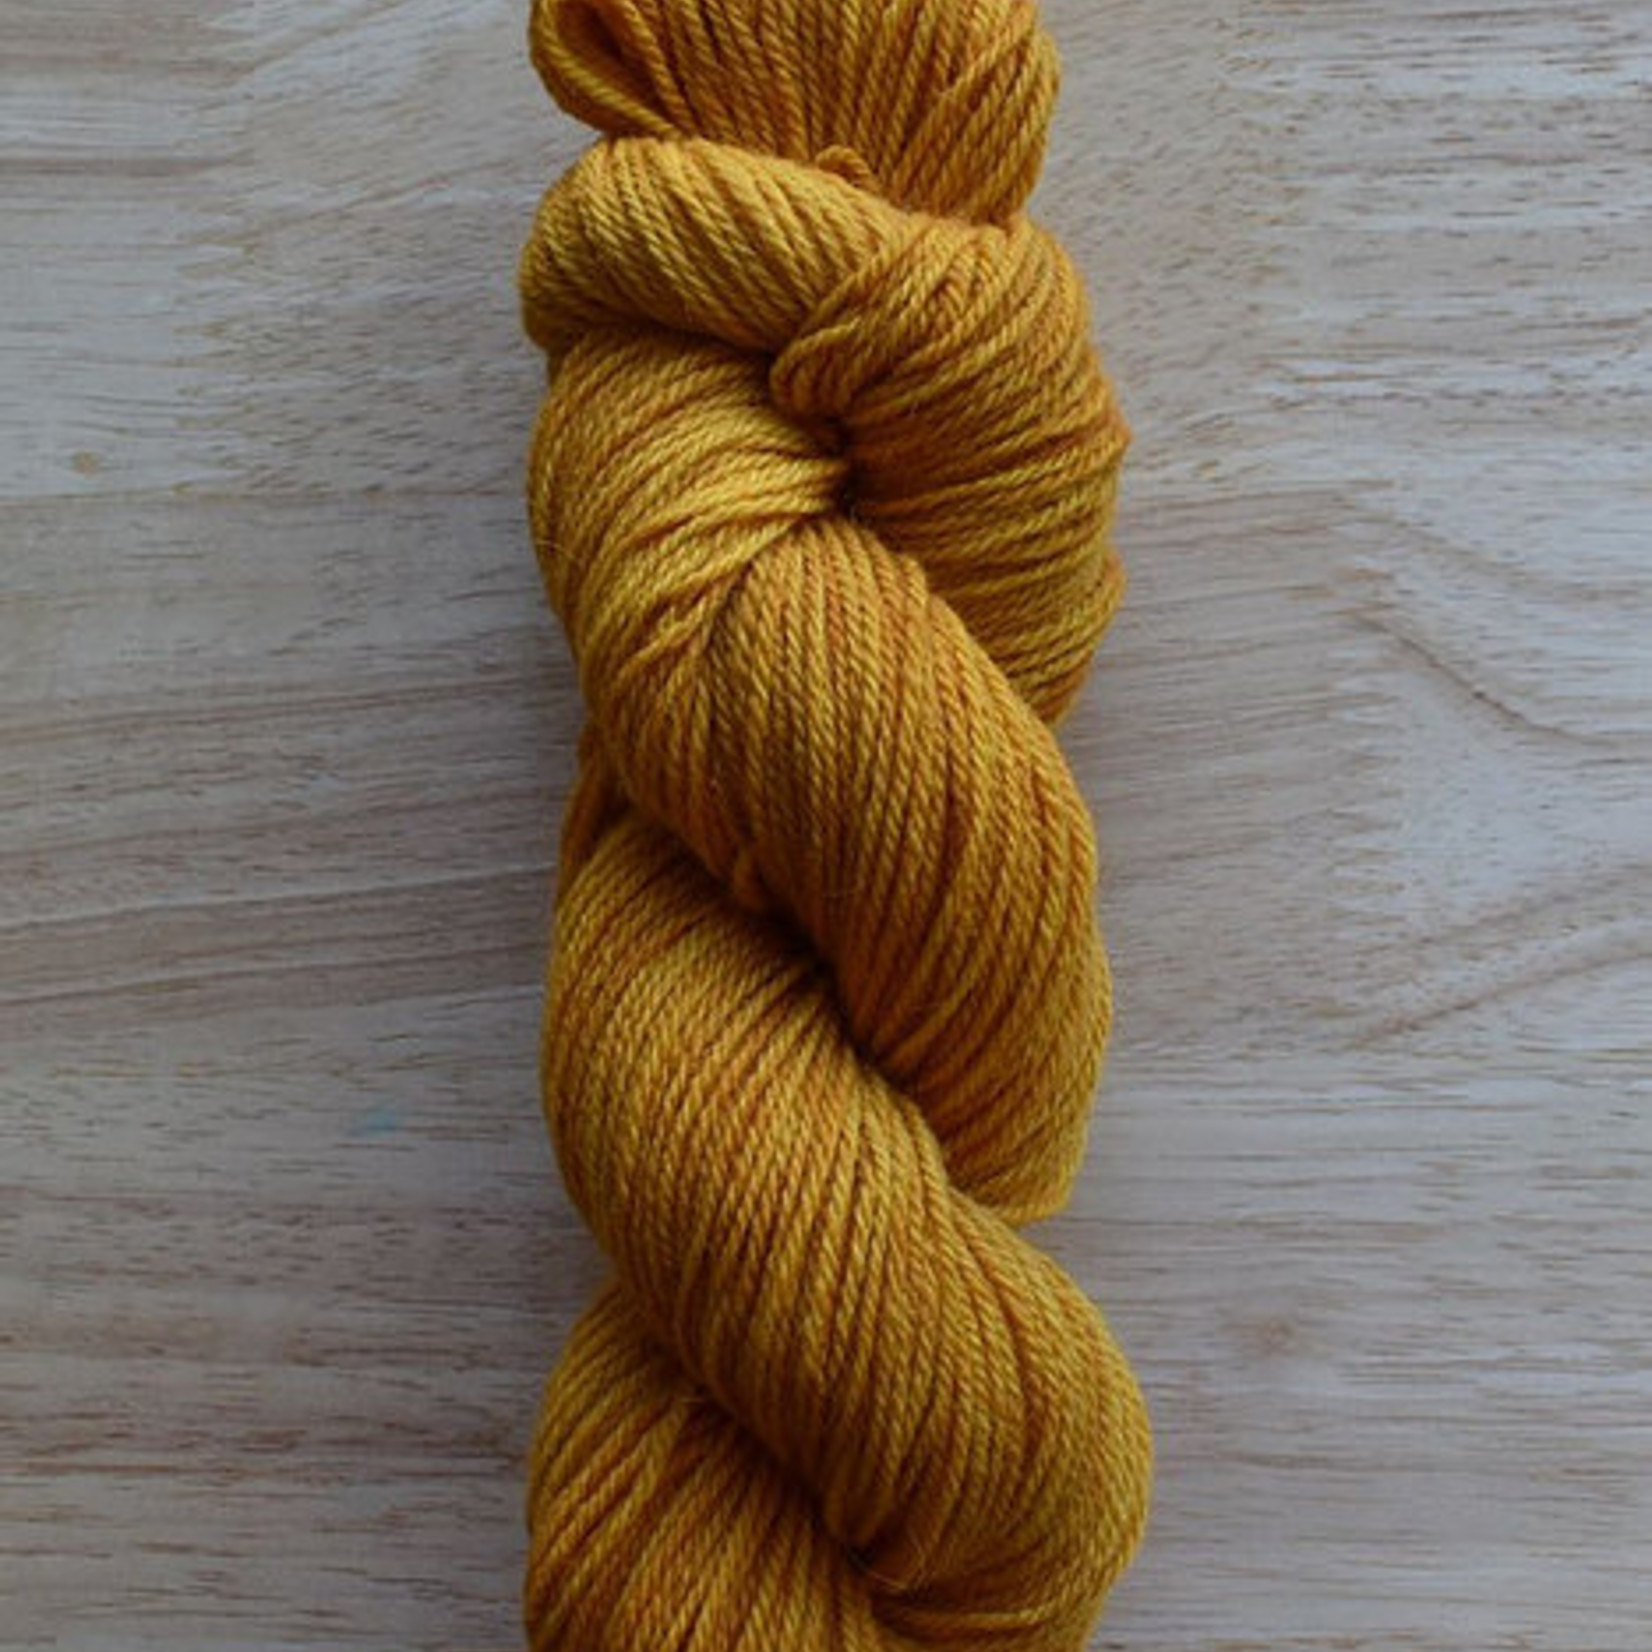 Laines Coco Yarns Laines Coco Yarns - Doigt De Fee